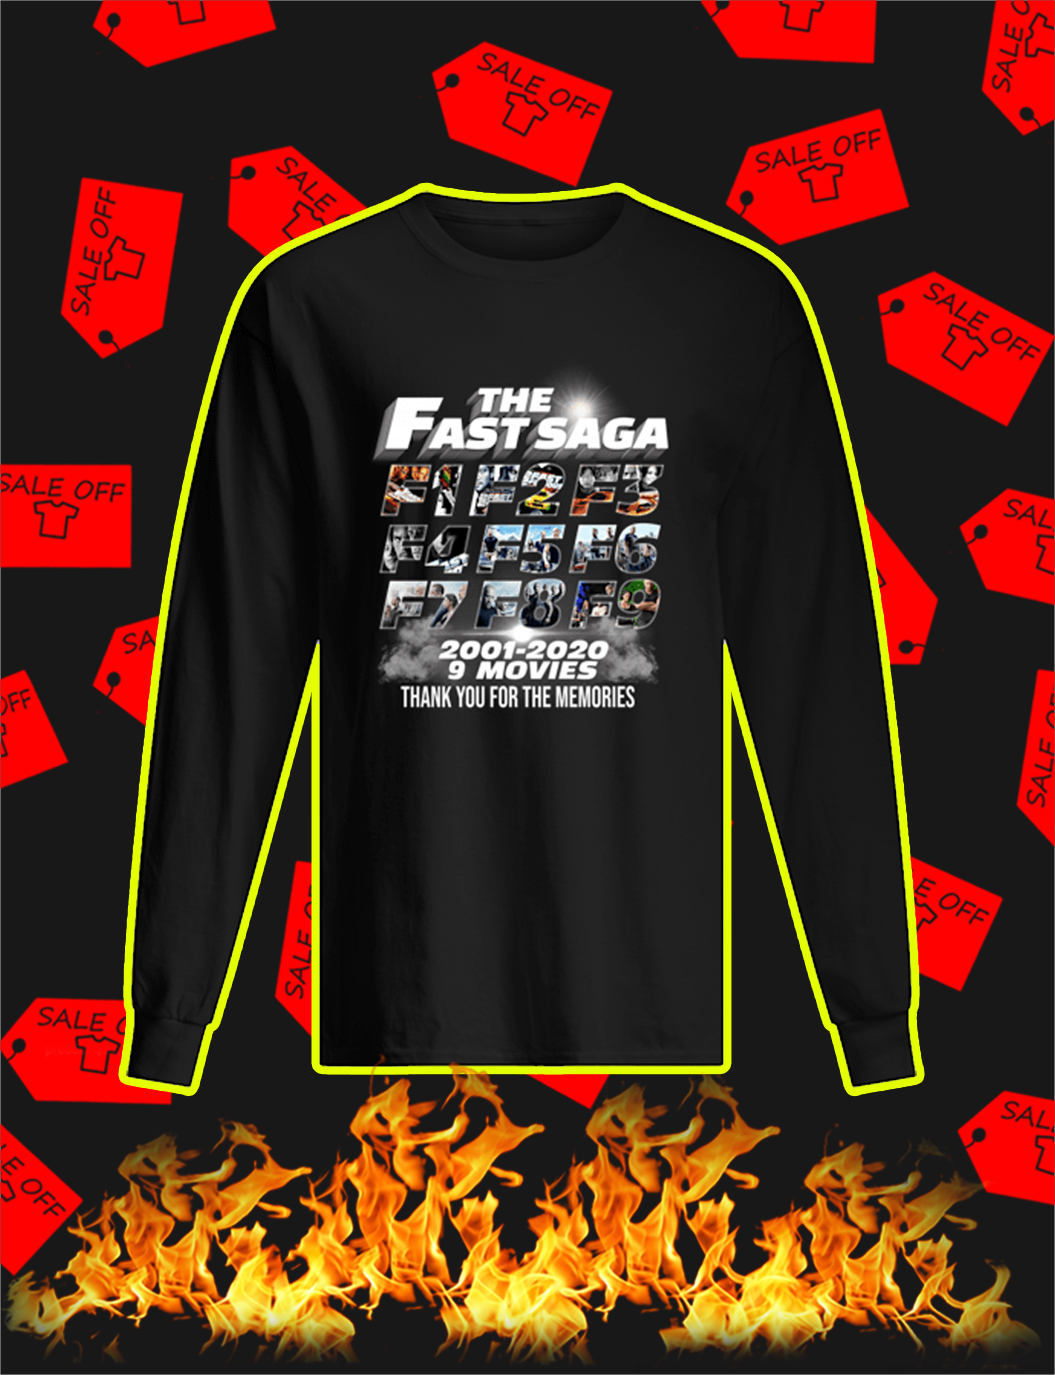 The Fast Saga 2001 2020 Thank You For The Memories longsleeve tee